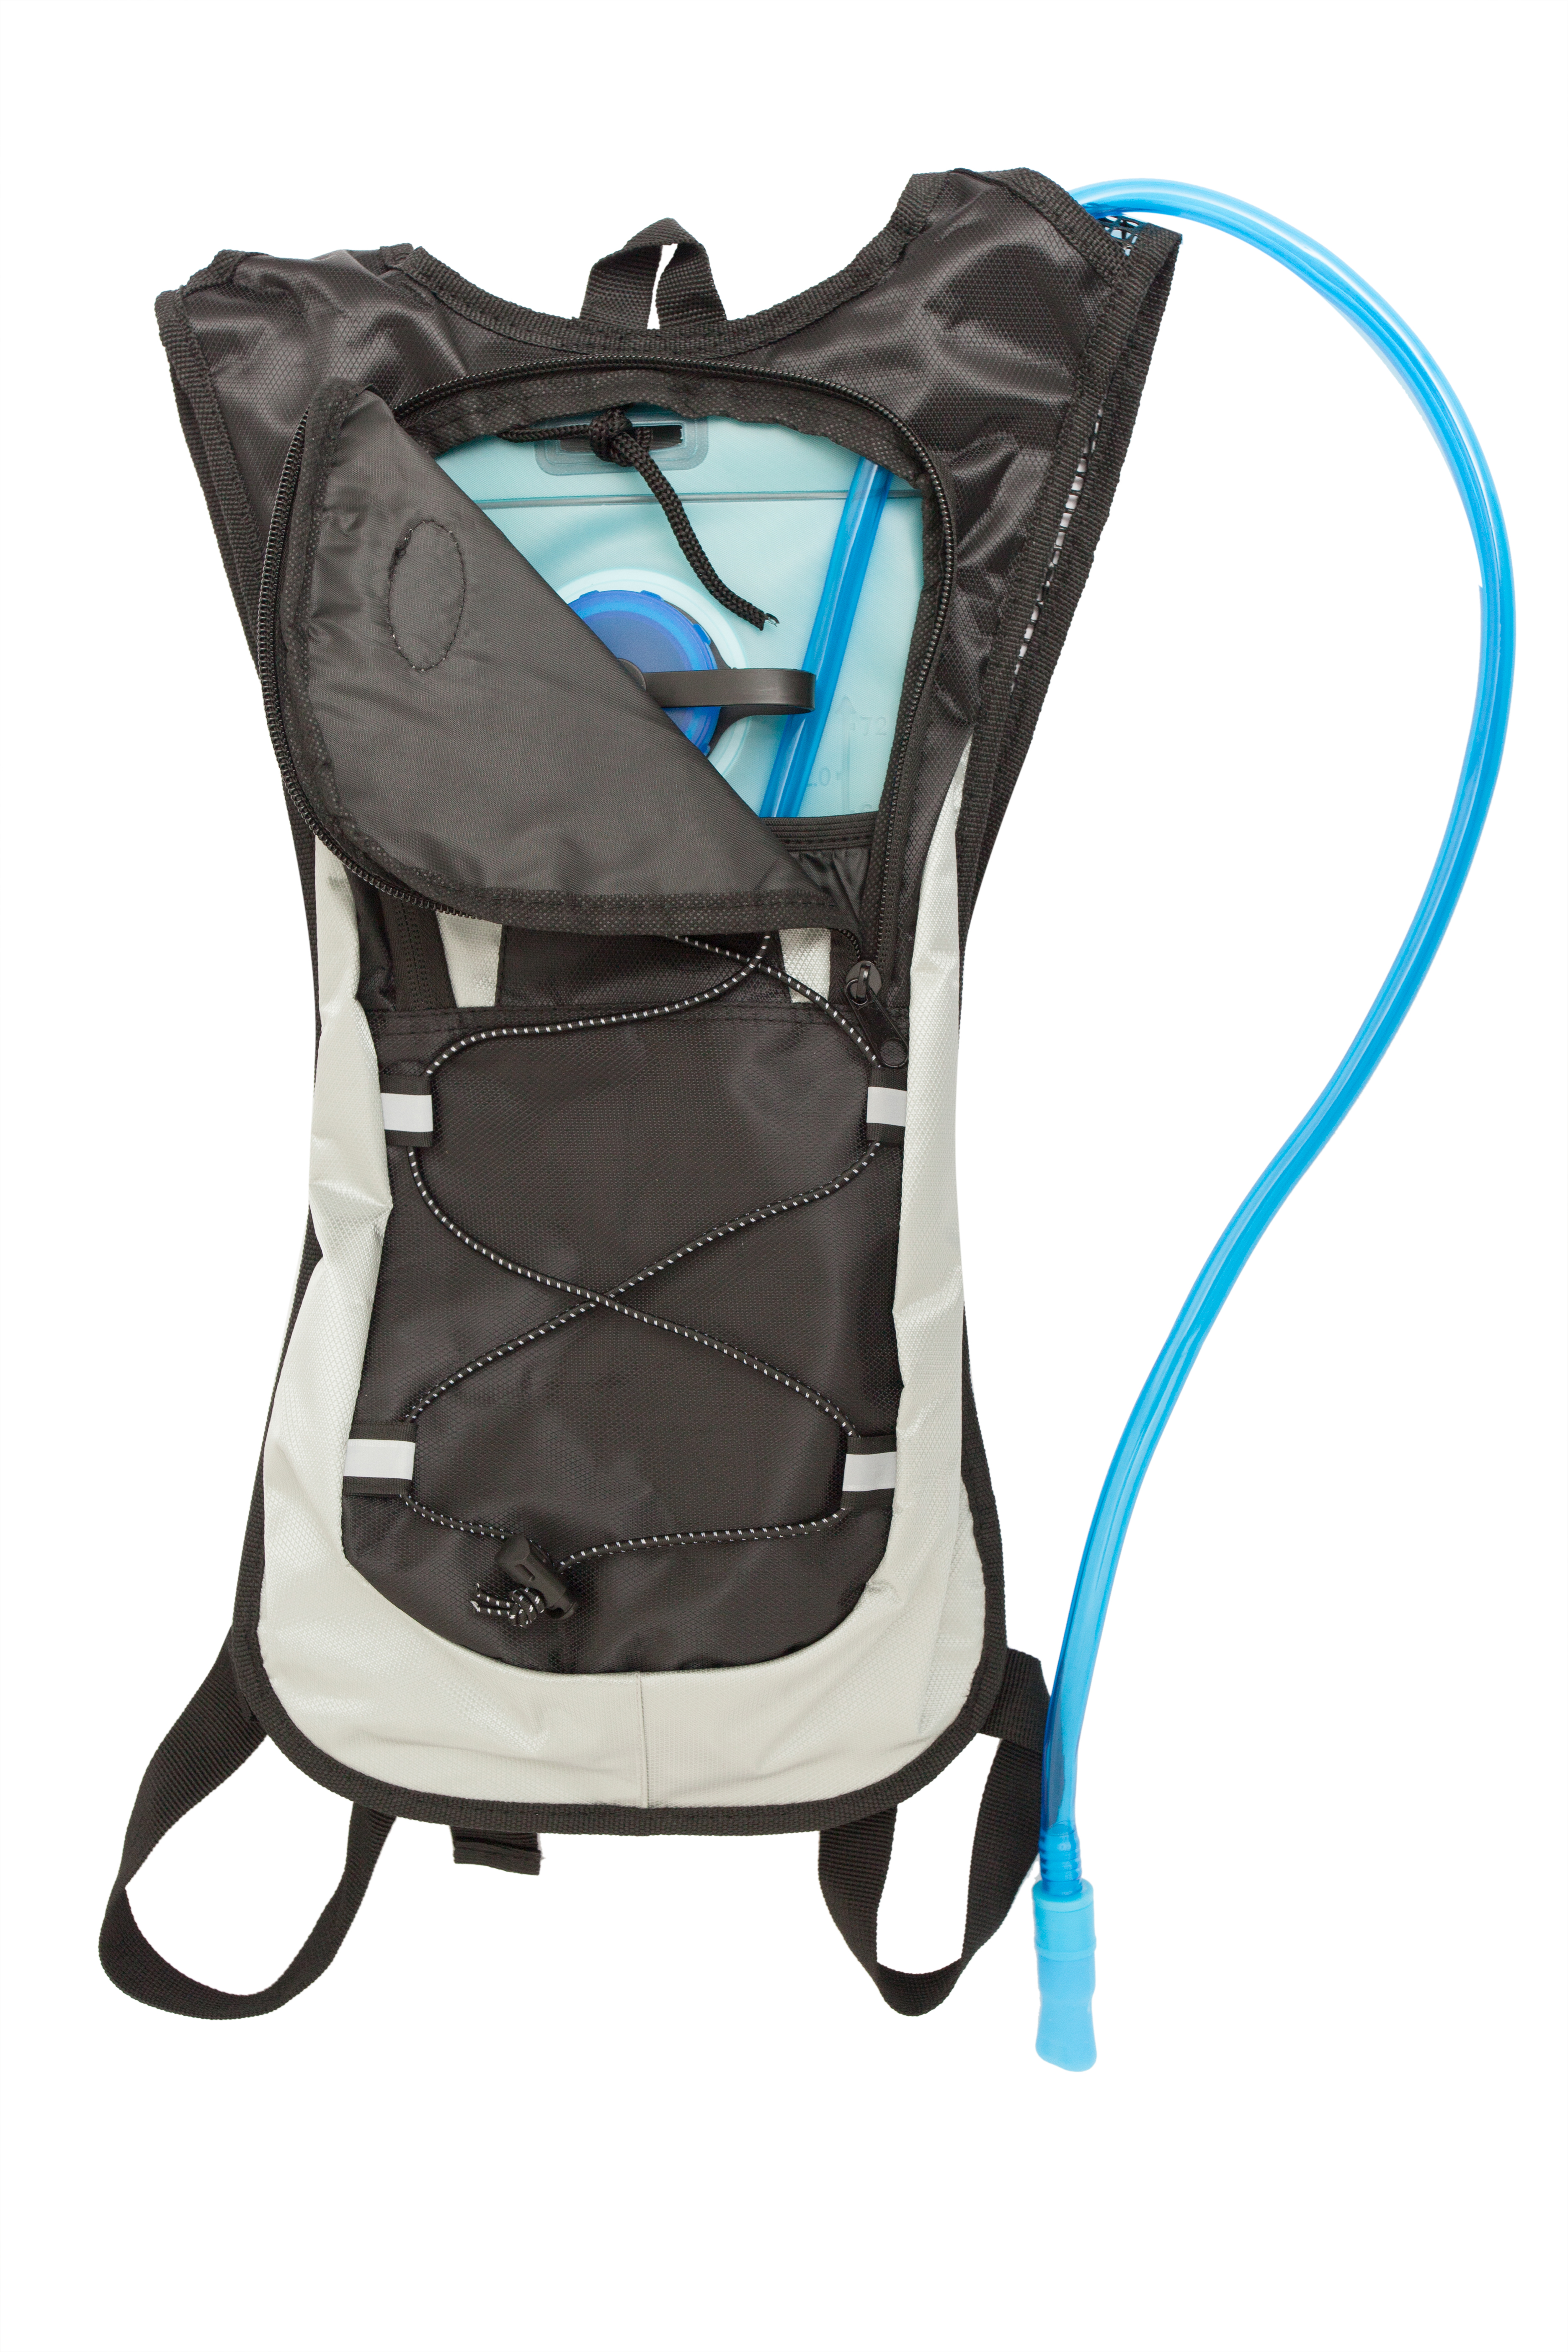 how to clean a backpack water bladder